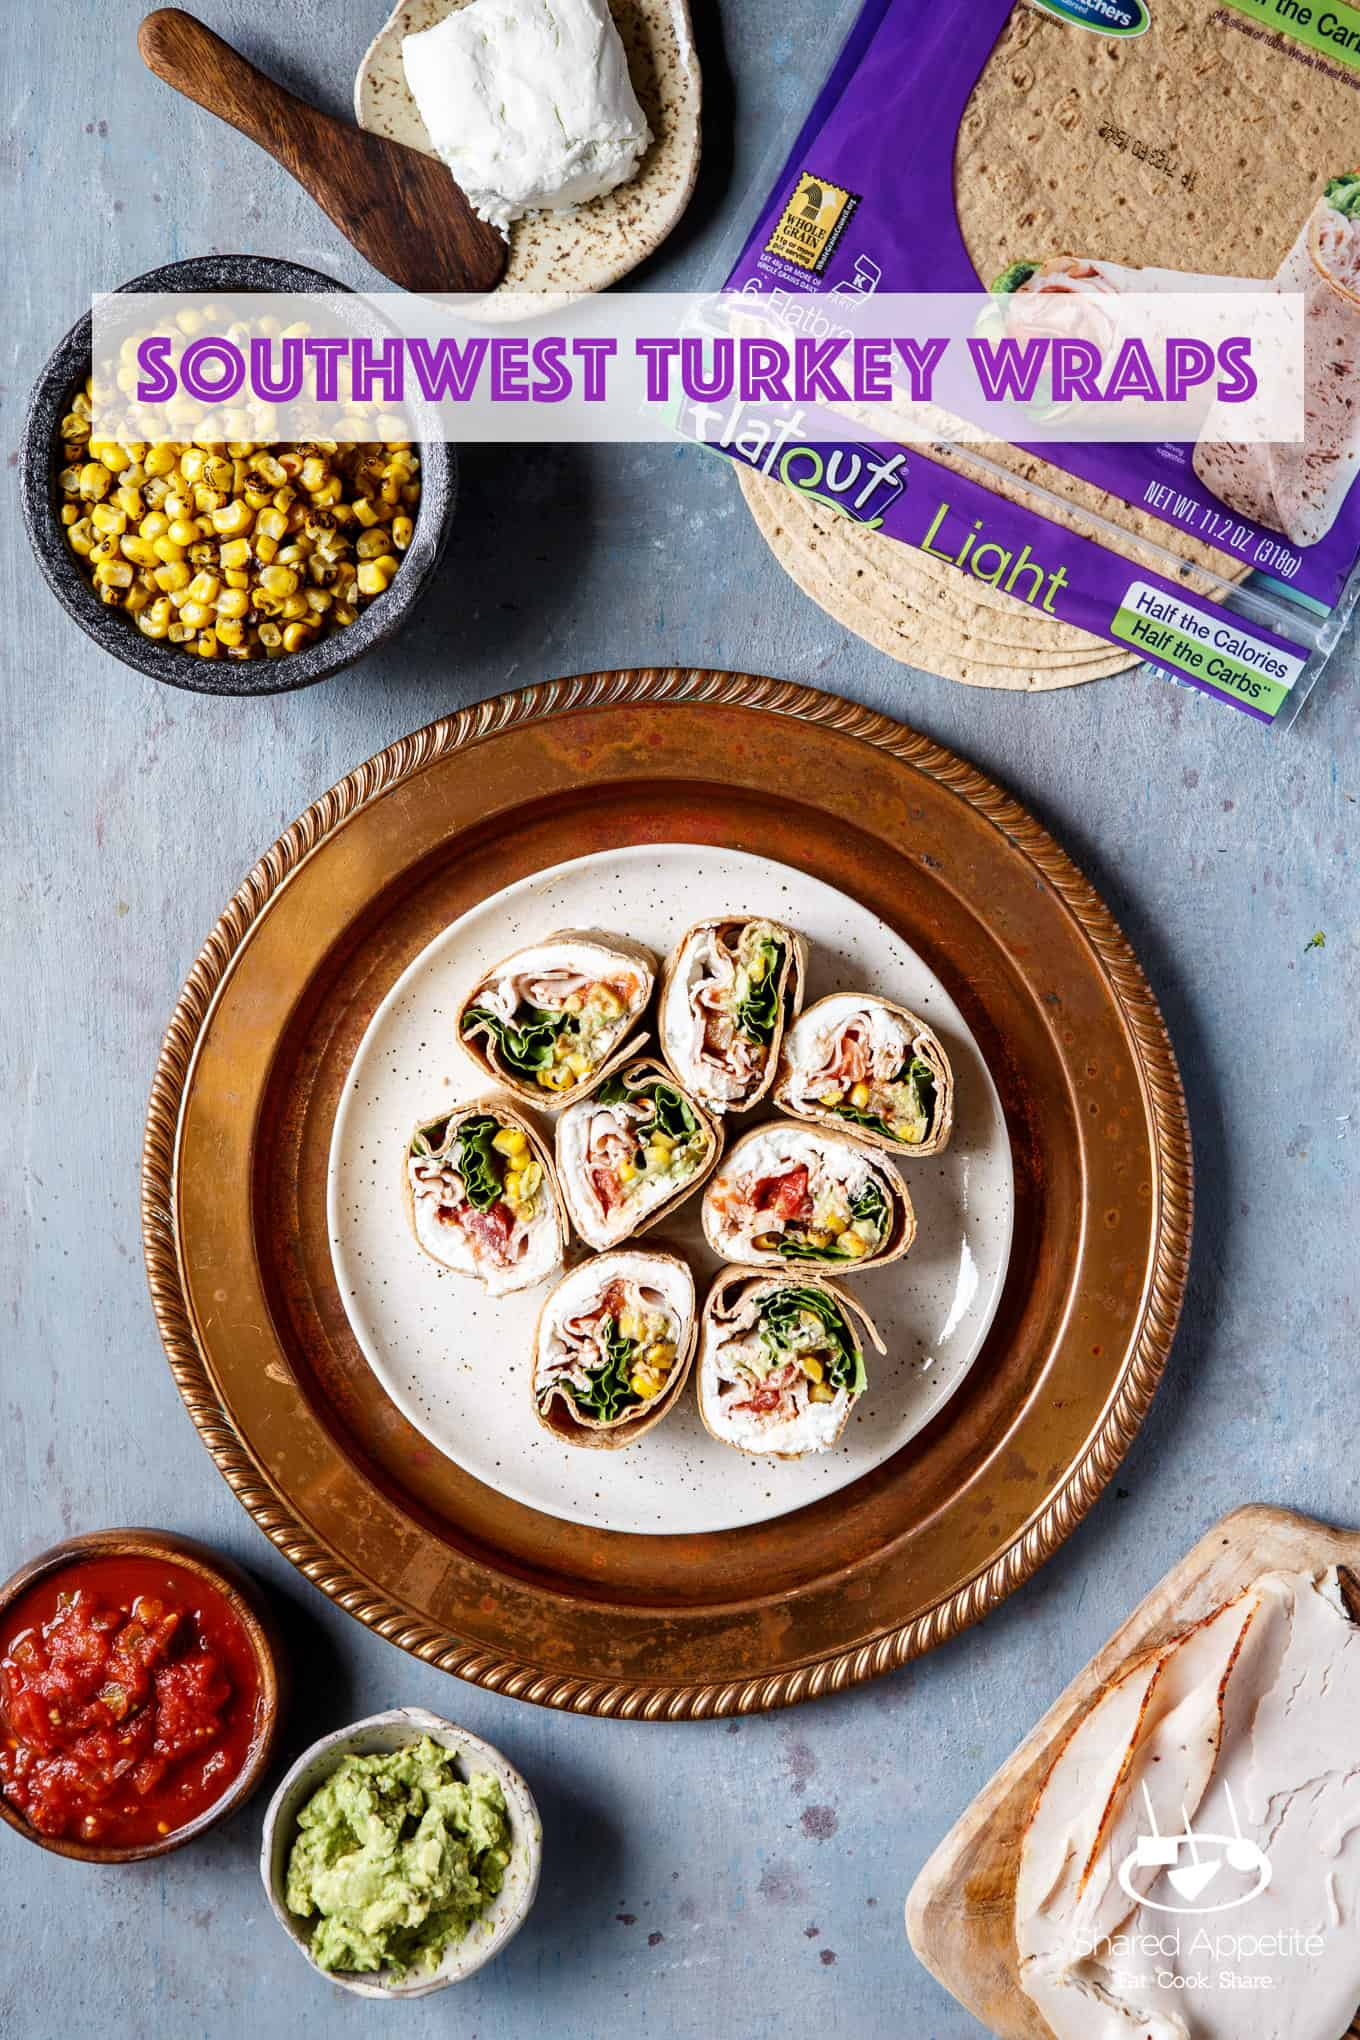 All the ingredients for Southwest Turkey Wraps | sharedappetite.com